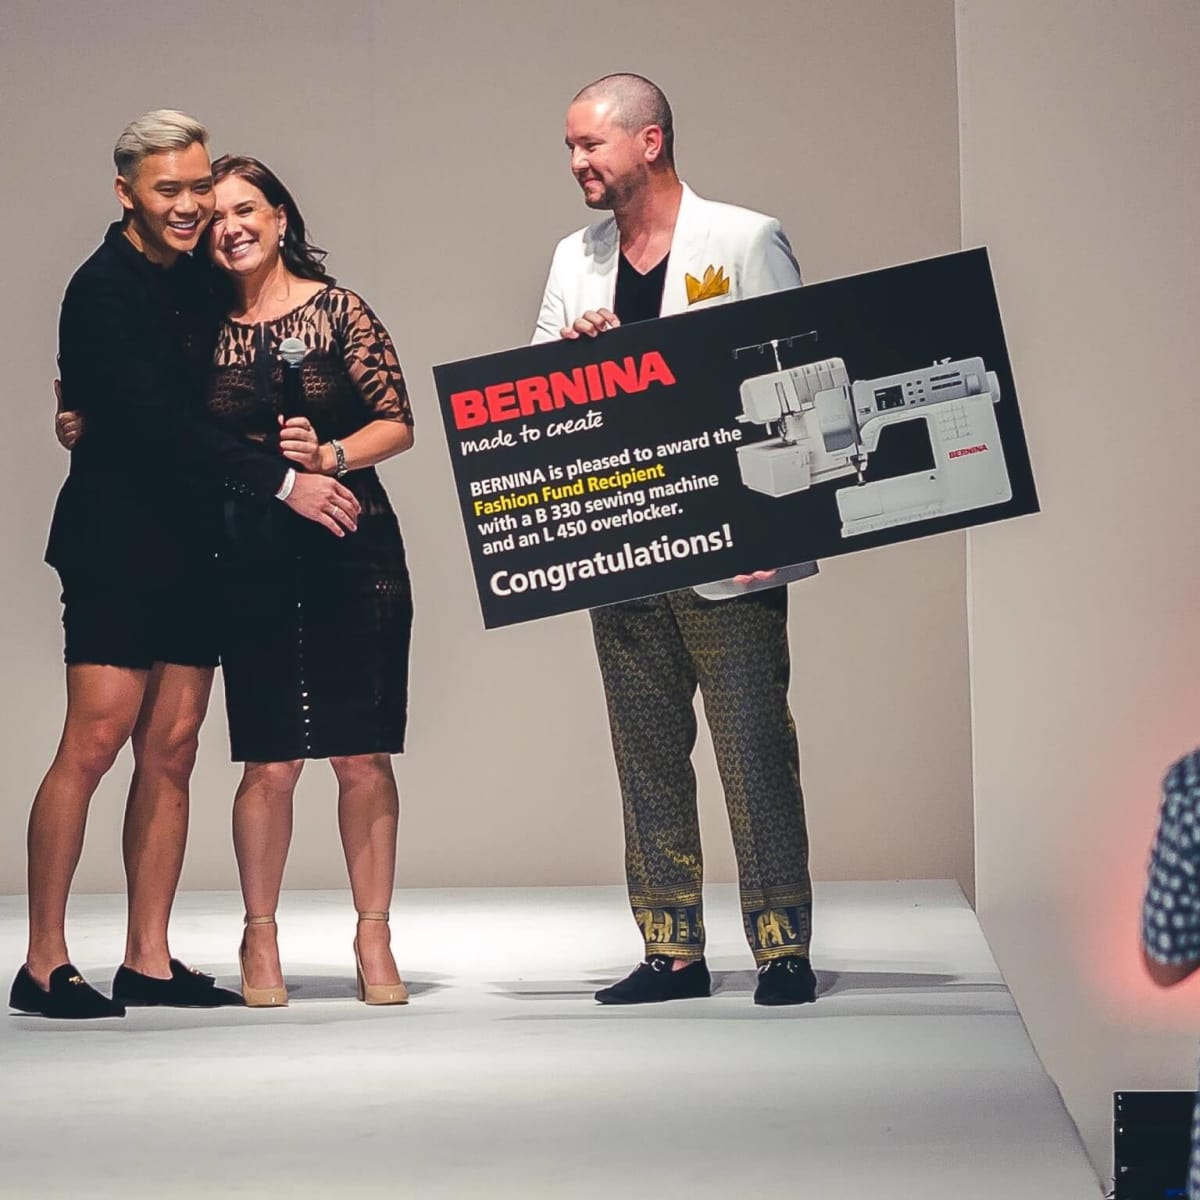 Fashion X Houston, Nicholas Phat Nguyen, Matt Swinney, Bernina award